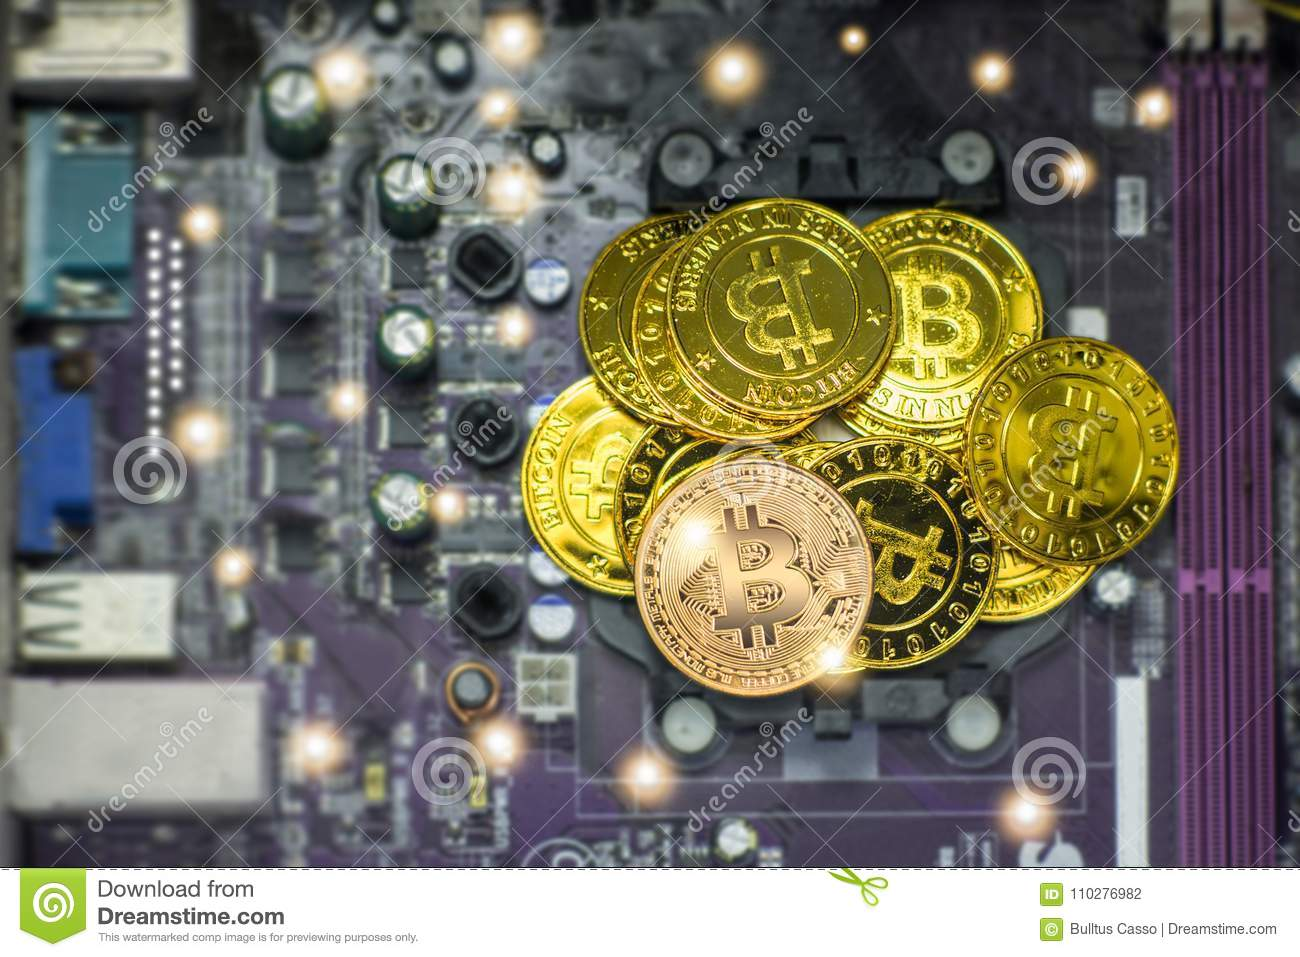 Coin Electronic Circuits Schematics Wiring Diagrams Toss Circuit Diagram Golden On The Background Of Board Stock Rh Dreamstime Com Digital